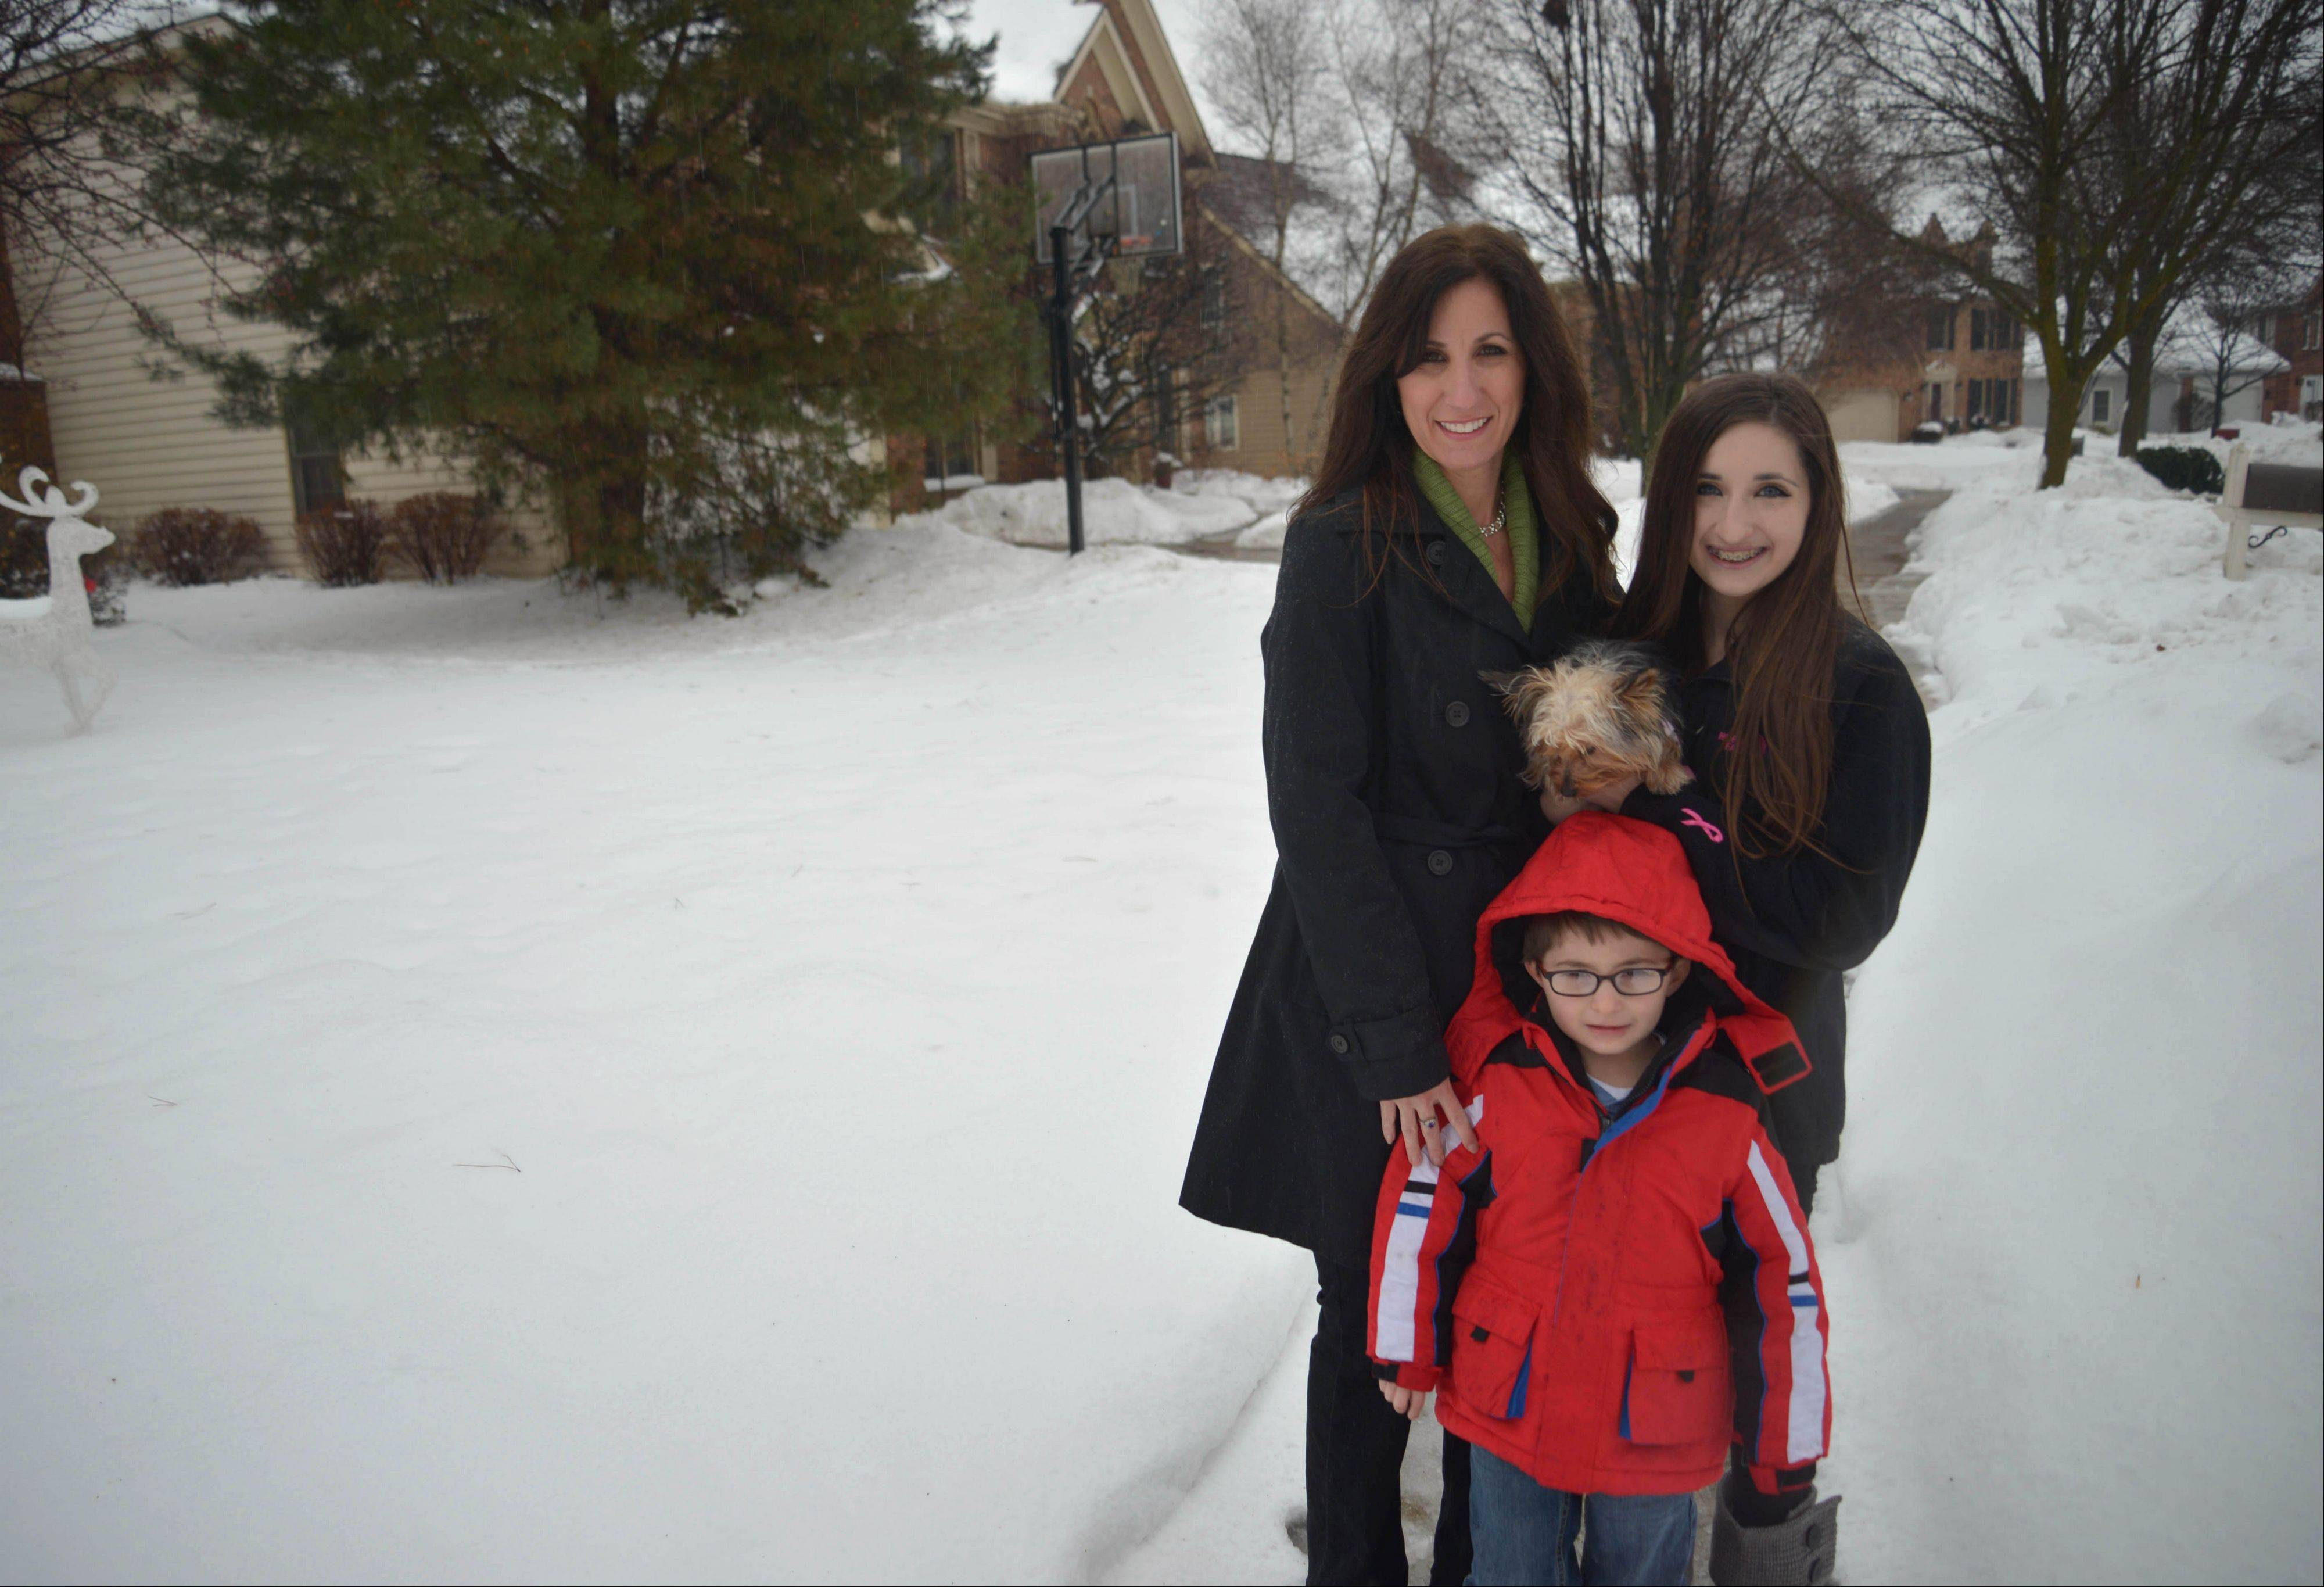 The Cincinello family remains shaken by the death of their 12-year-old white Maltese, Daisy, who was grabbed by a coyote in the front yard of their Wheaton home. The family -- mom Carol, Ryan, 5, and Sara, 14 -- hold their new dog, Dixie.